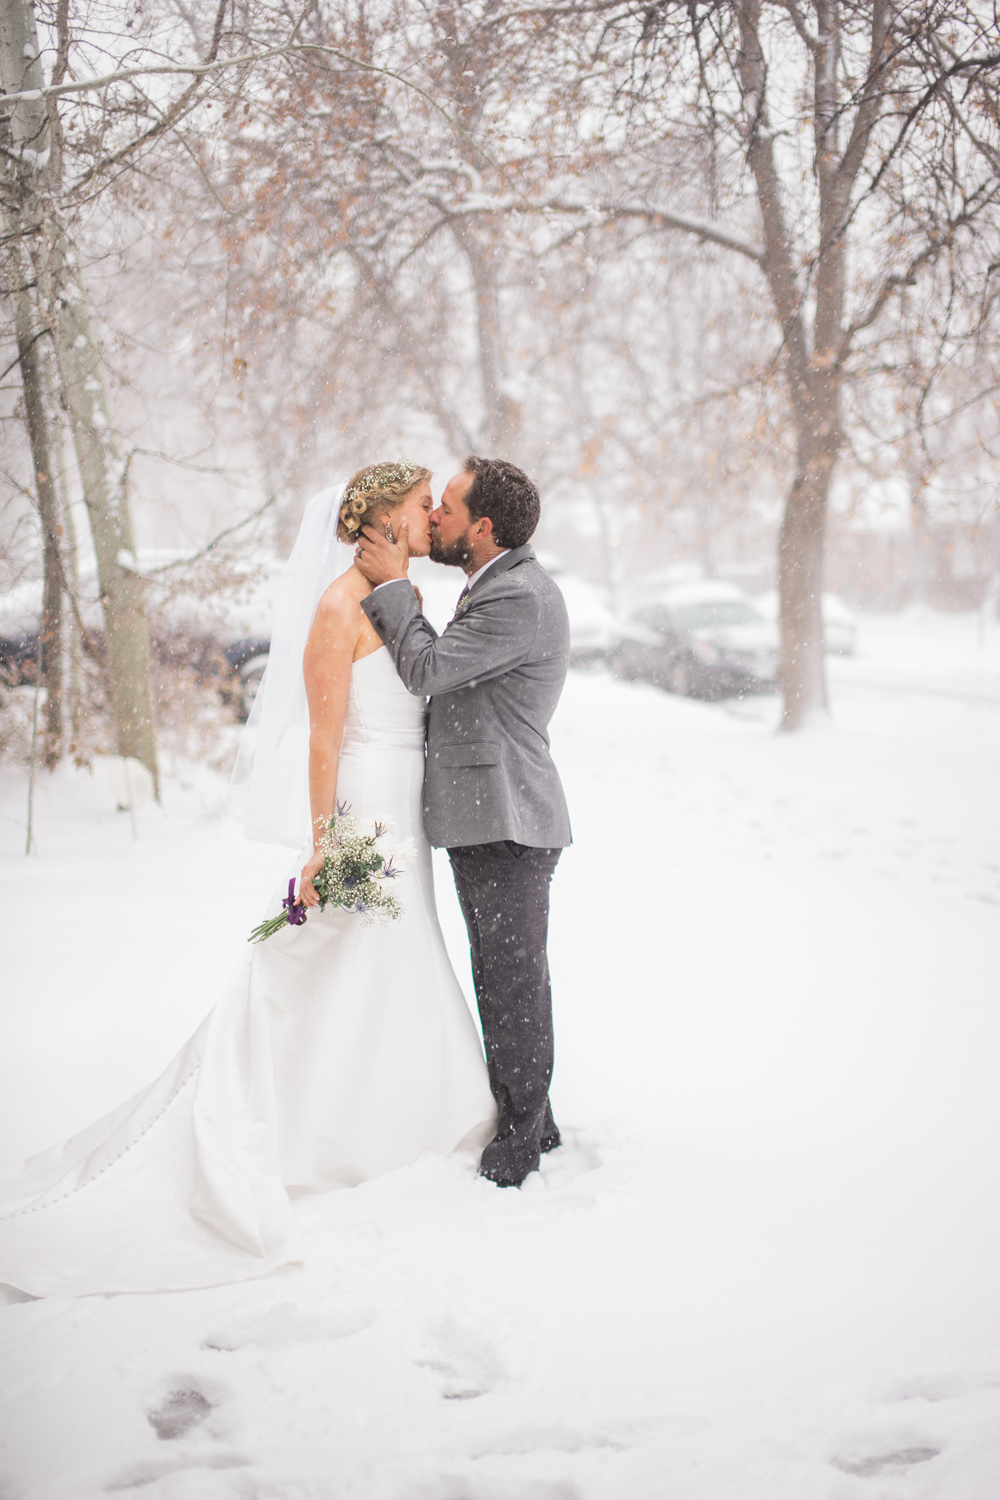 denver_snow_wedding_brienne_michelle.jpg